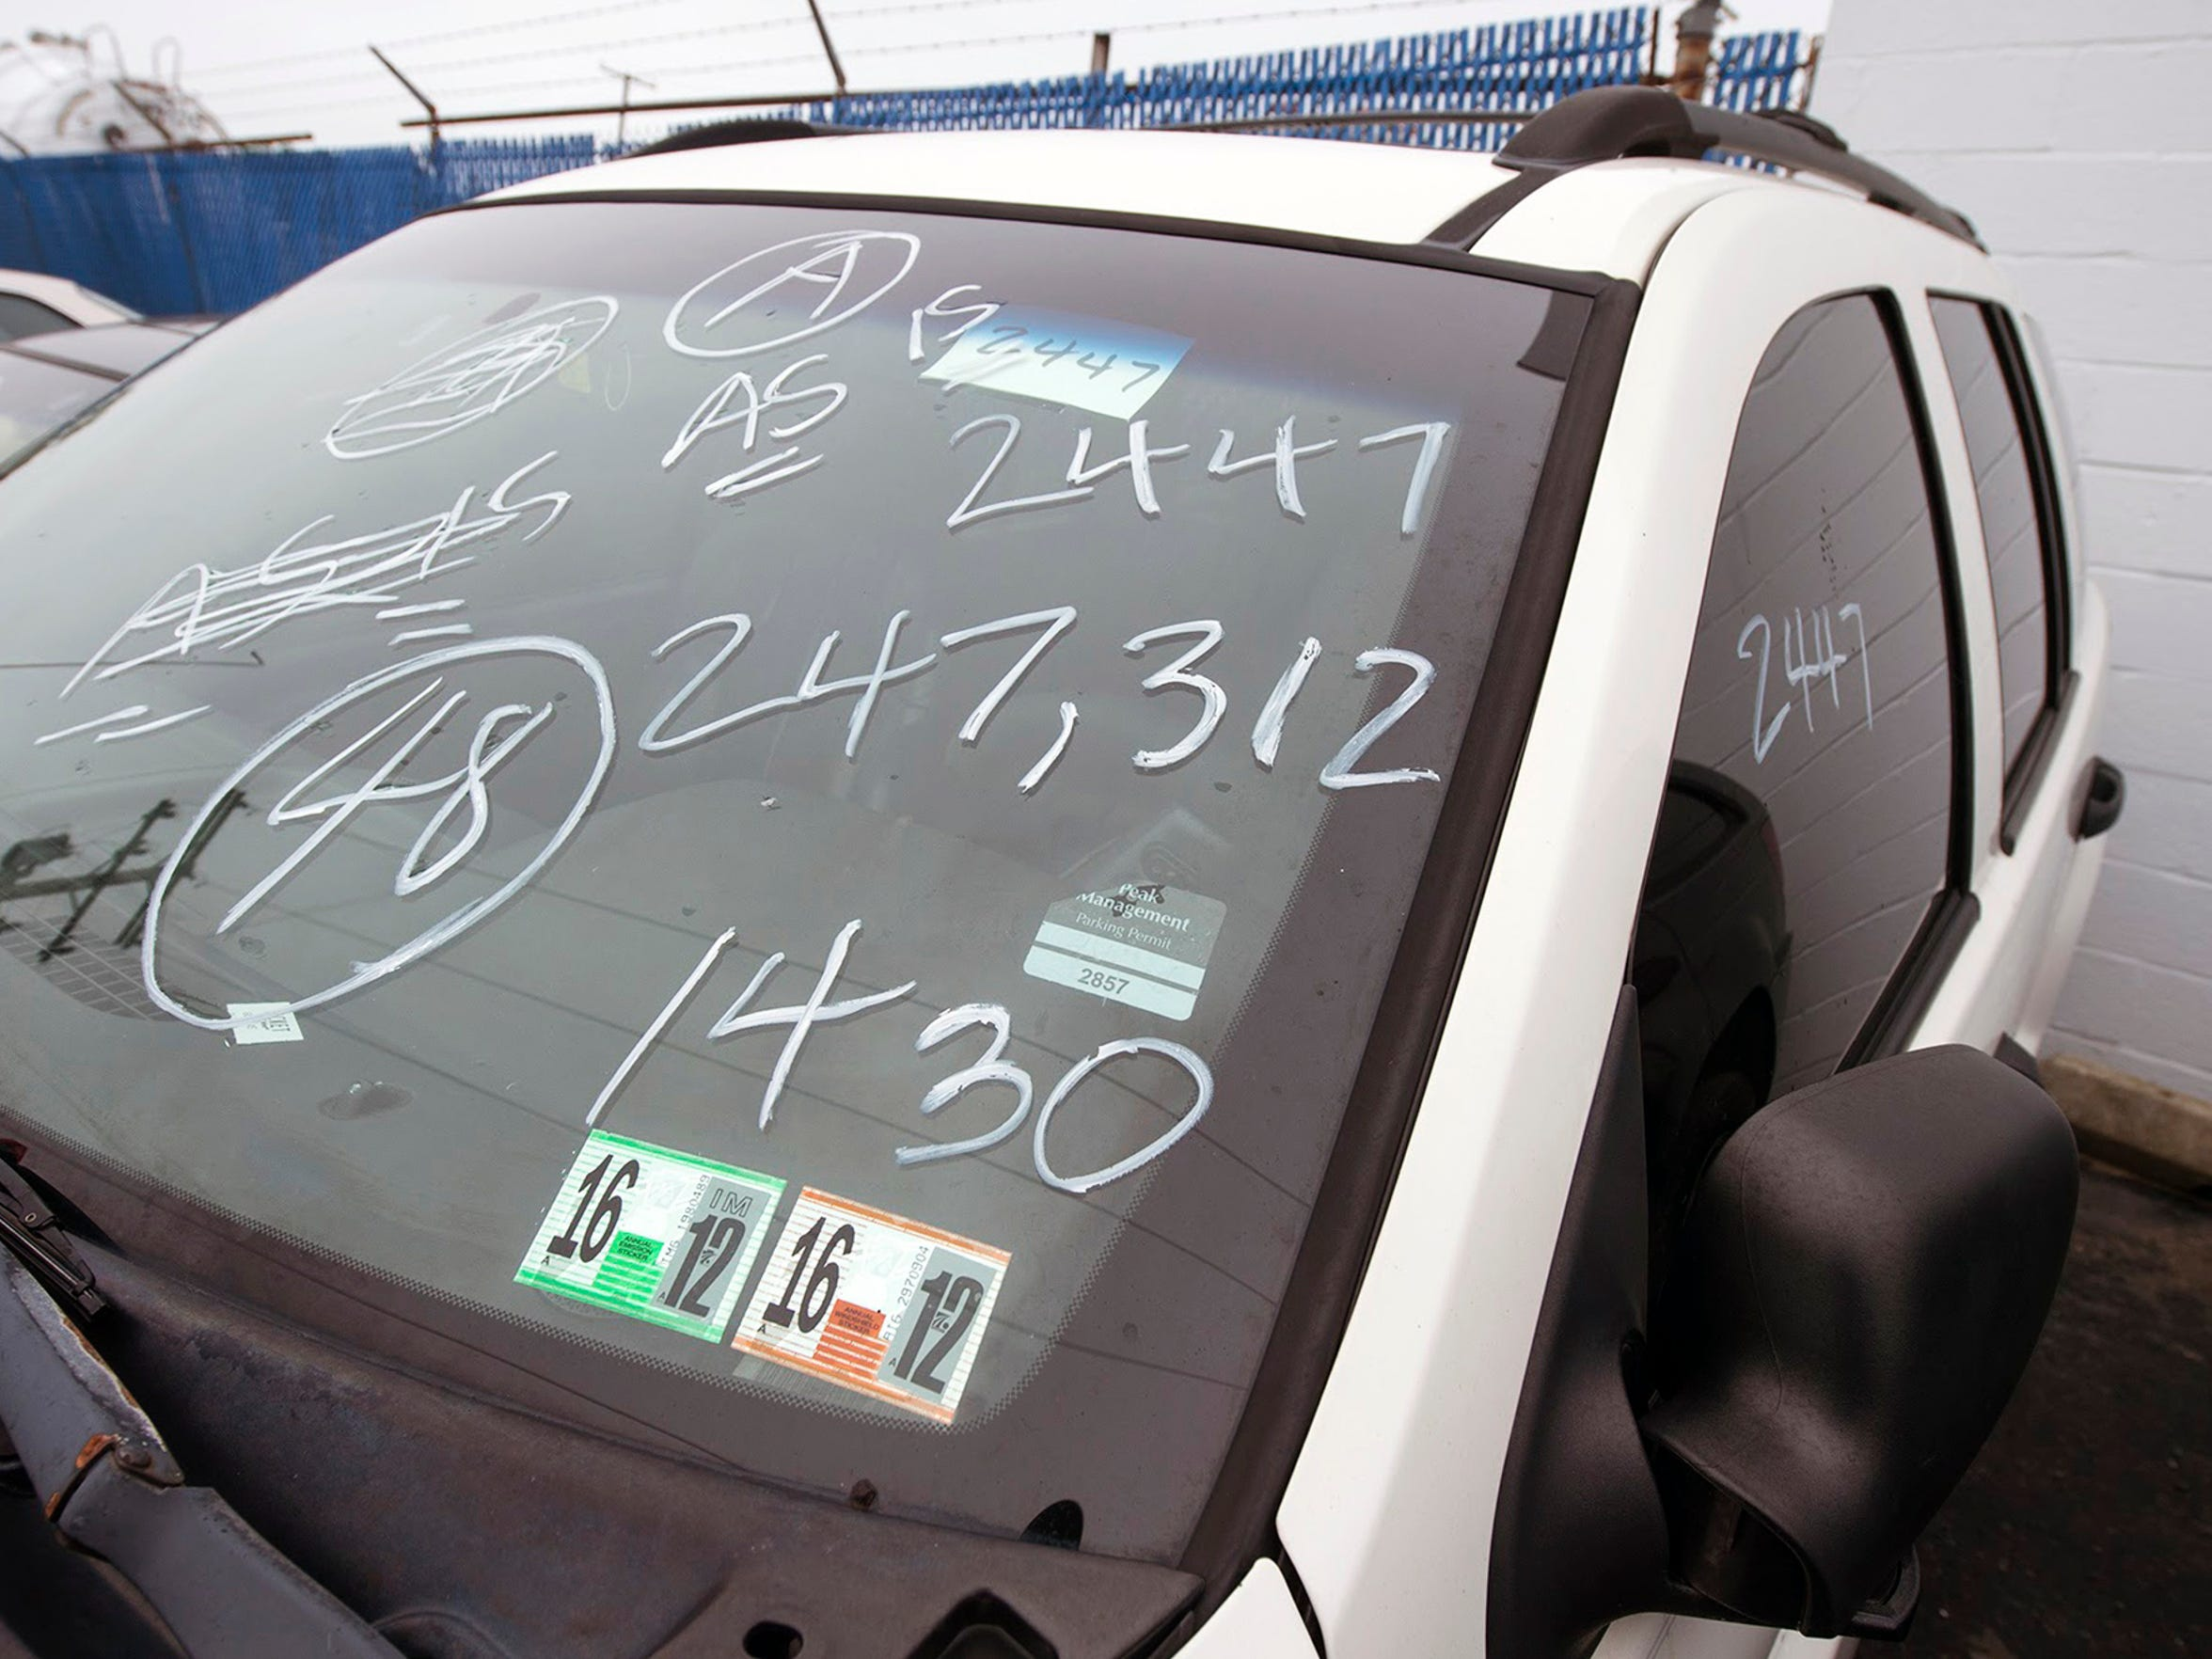 Details about a vehicle, written on the windshield, show that it has 247,312 miles on the odometer during the York County Drug Task Force auction in May of 2017.